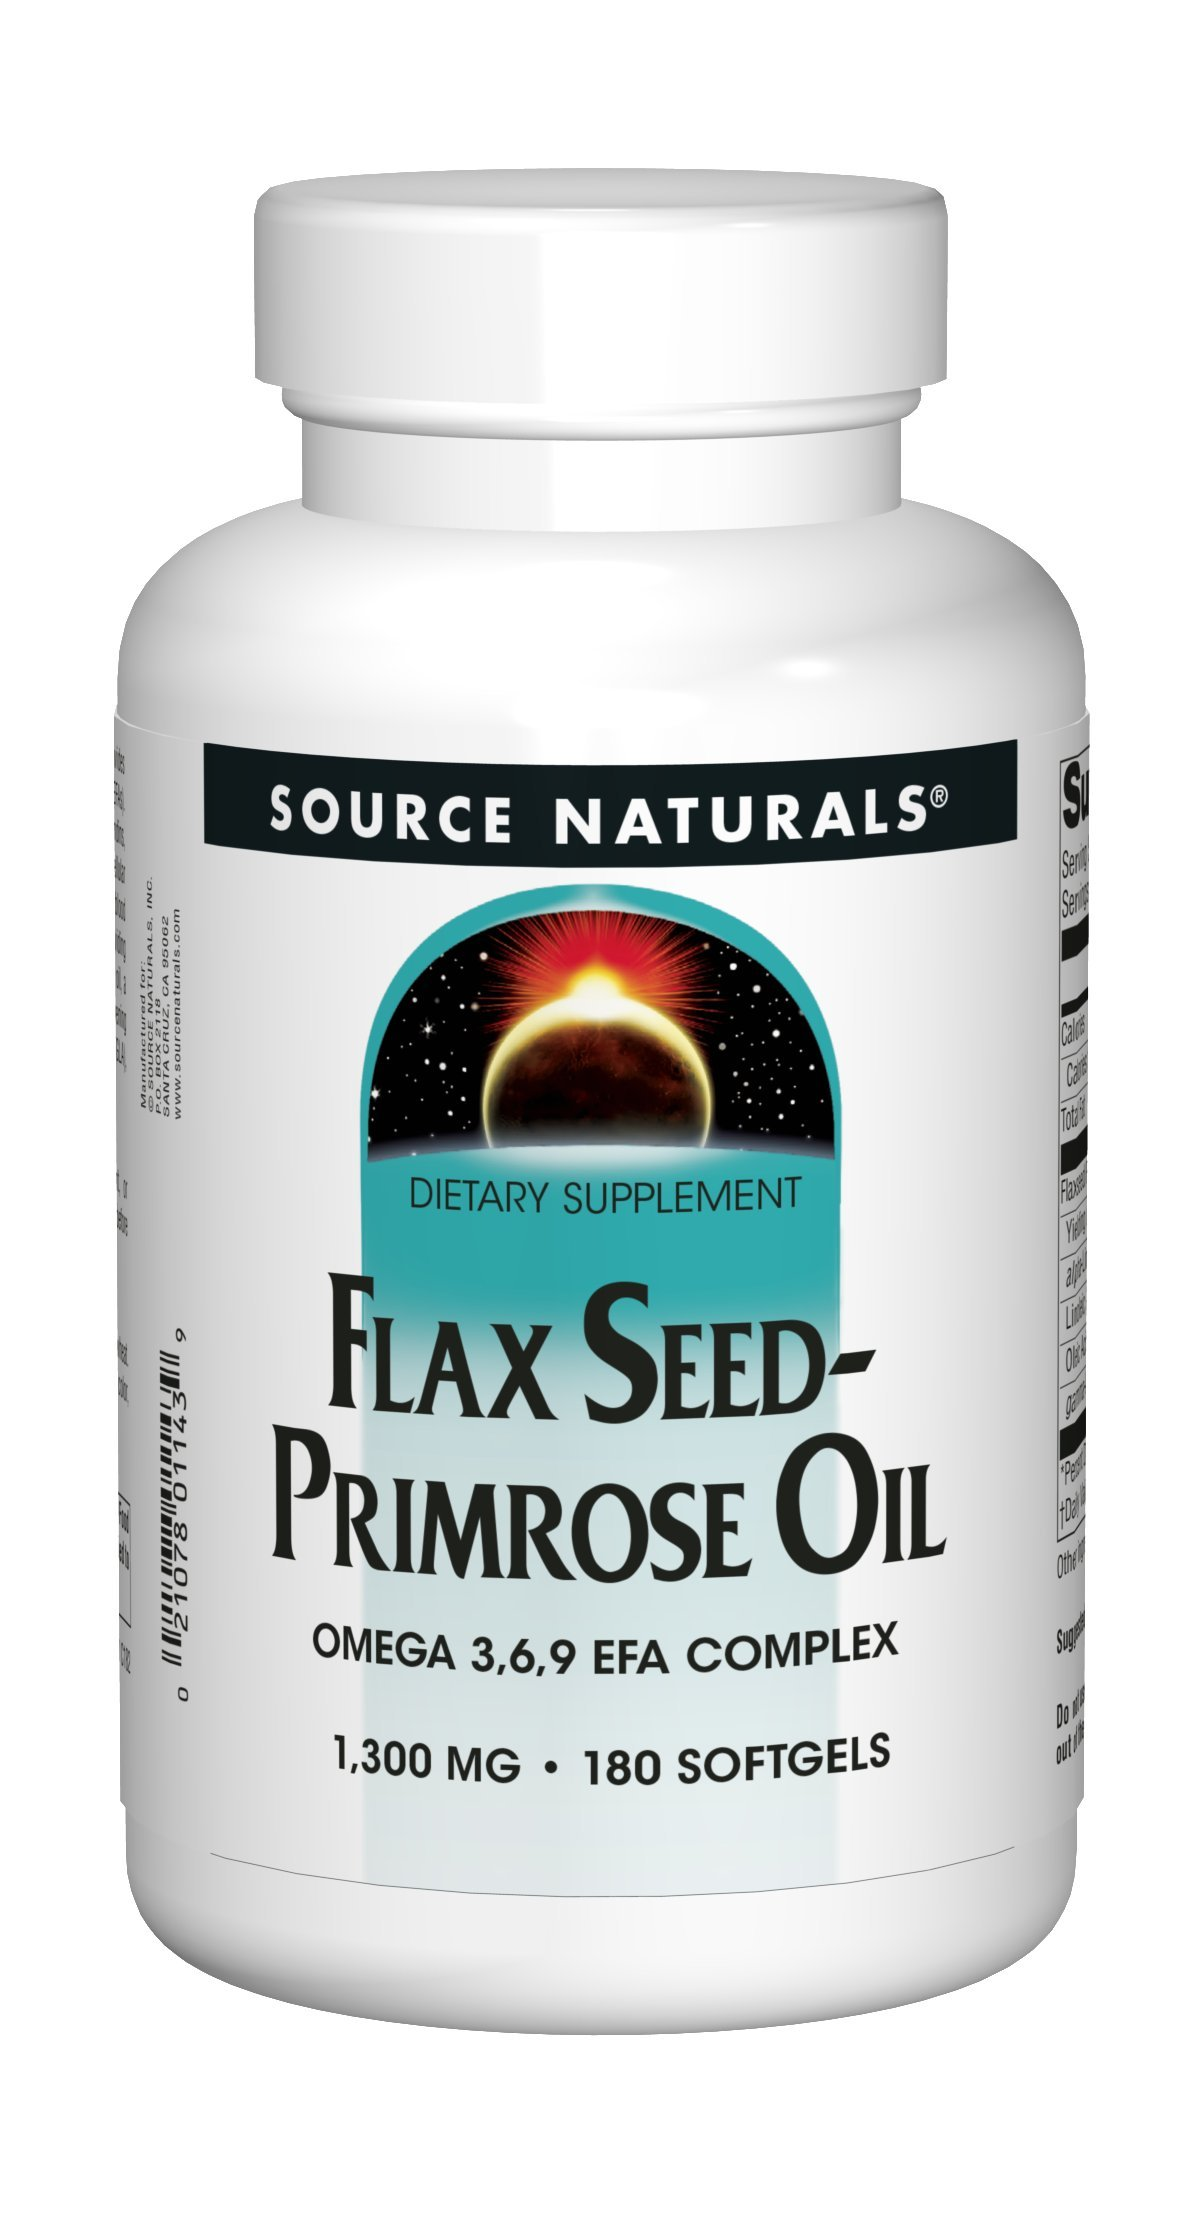 Source Naturals Flax Seed-Primrose Oil 1300 mg, Provides Nutritional Support During Women's Cycles, 180 Softgels